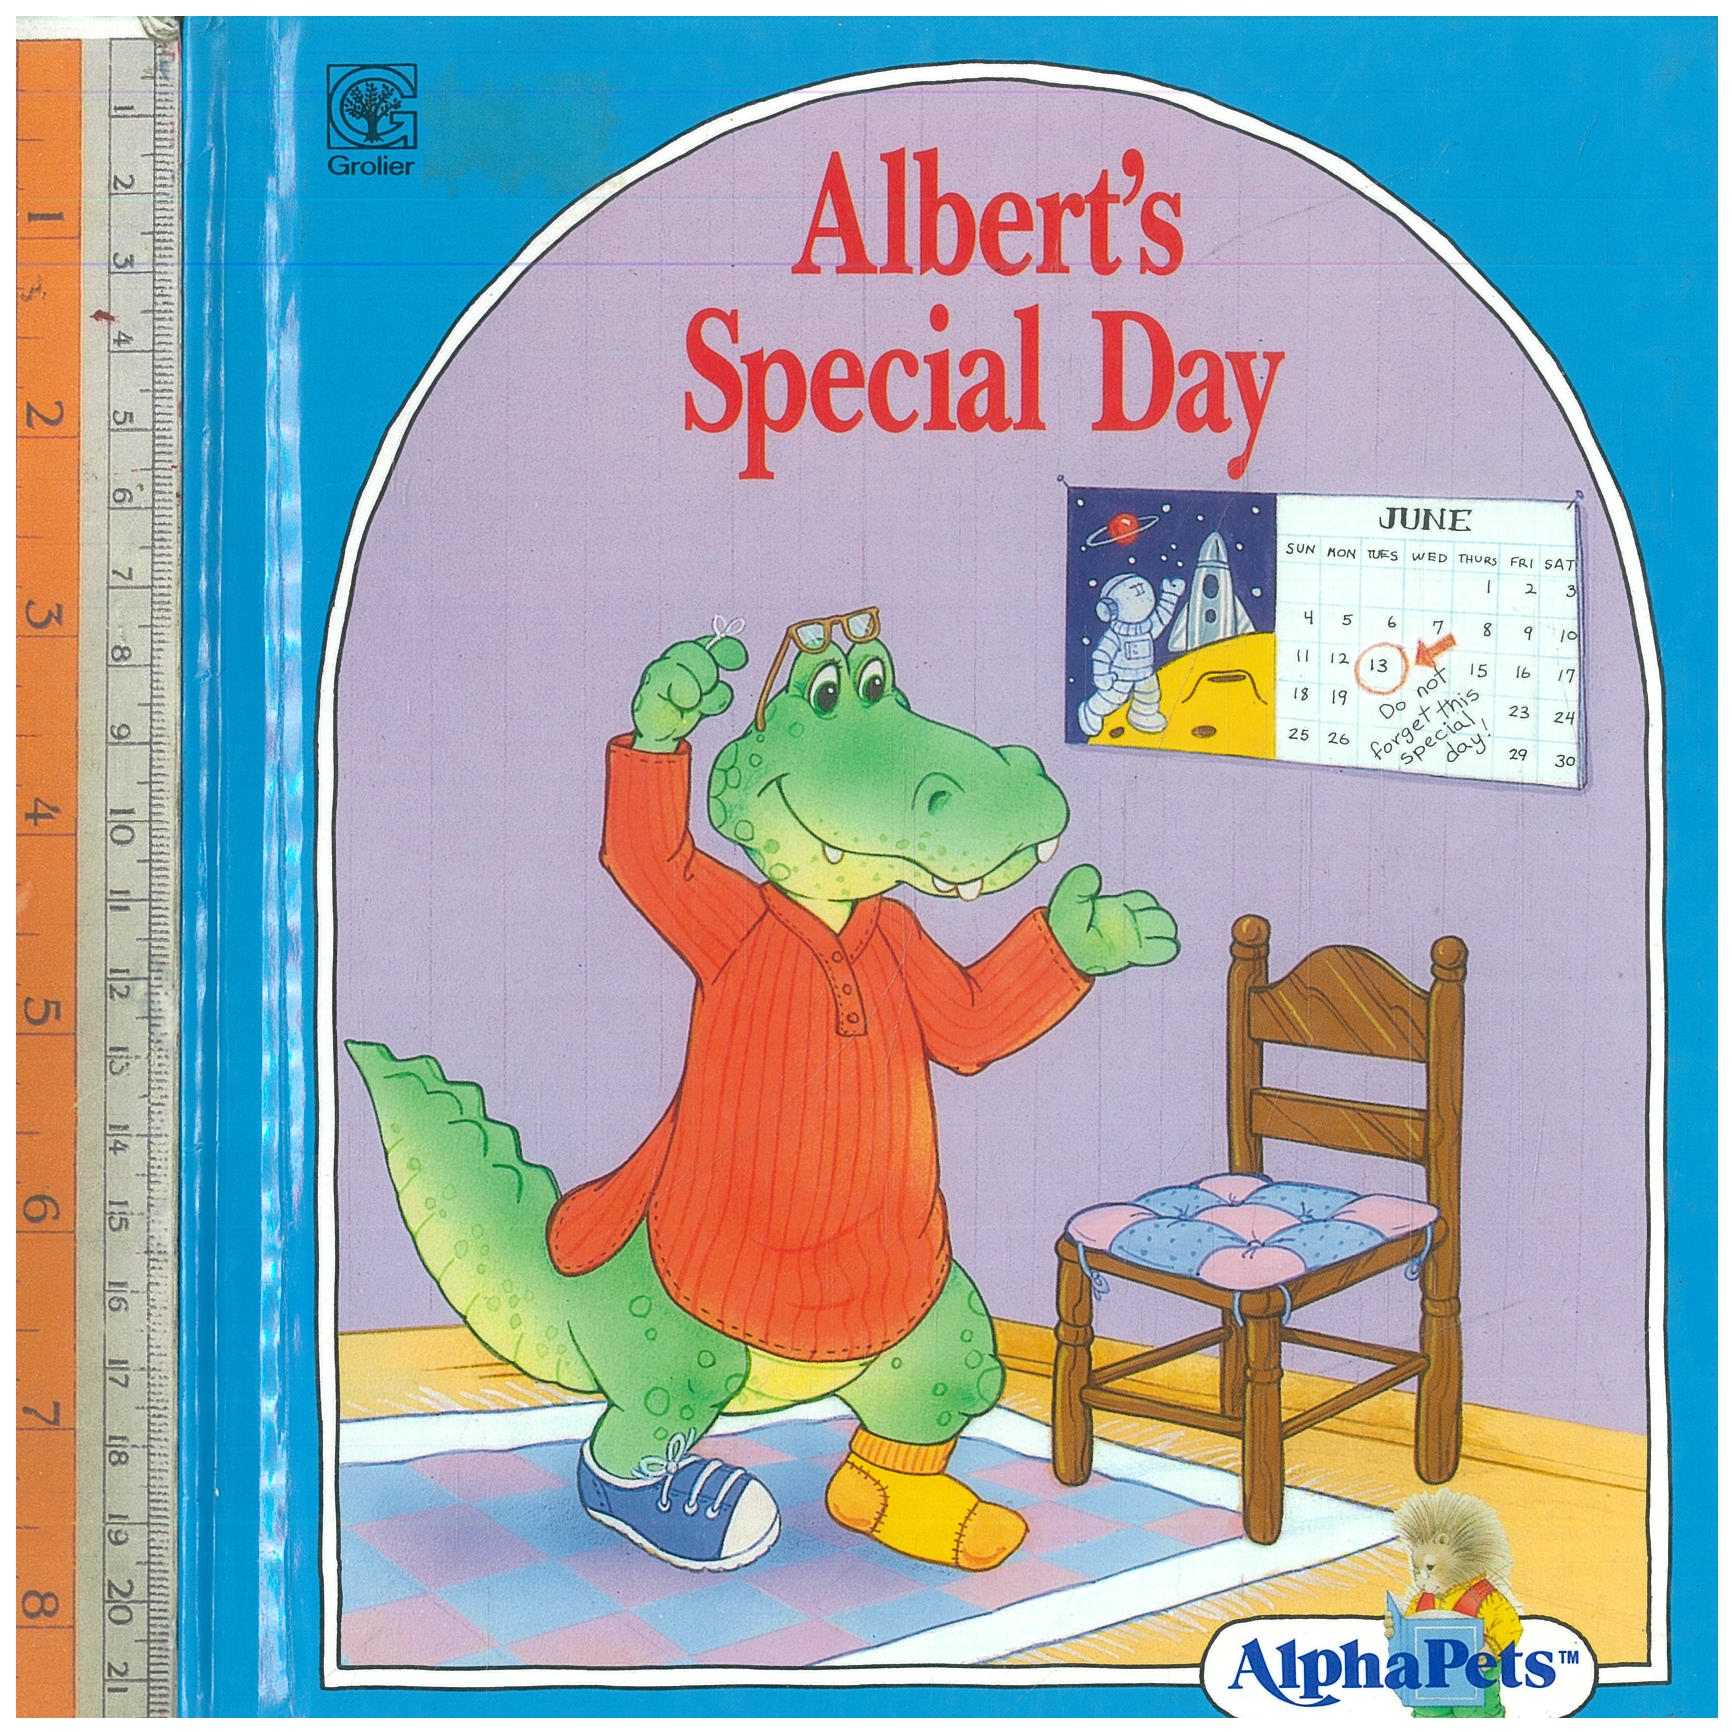 Albert's Special Day